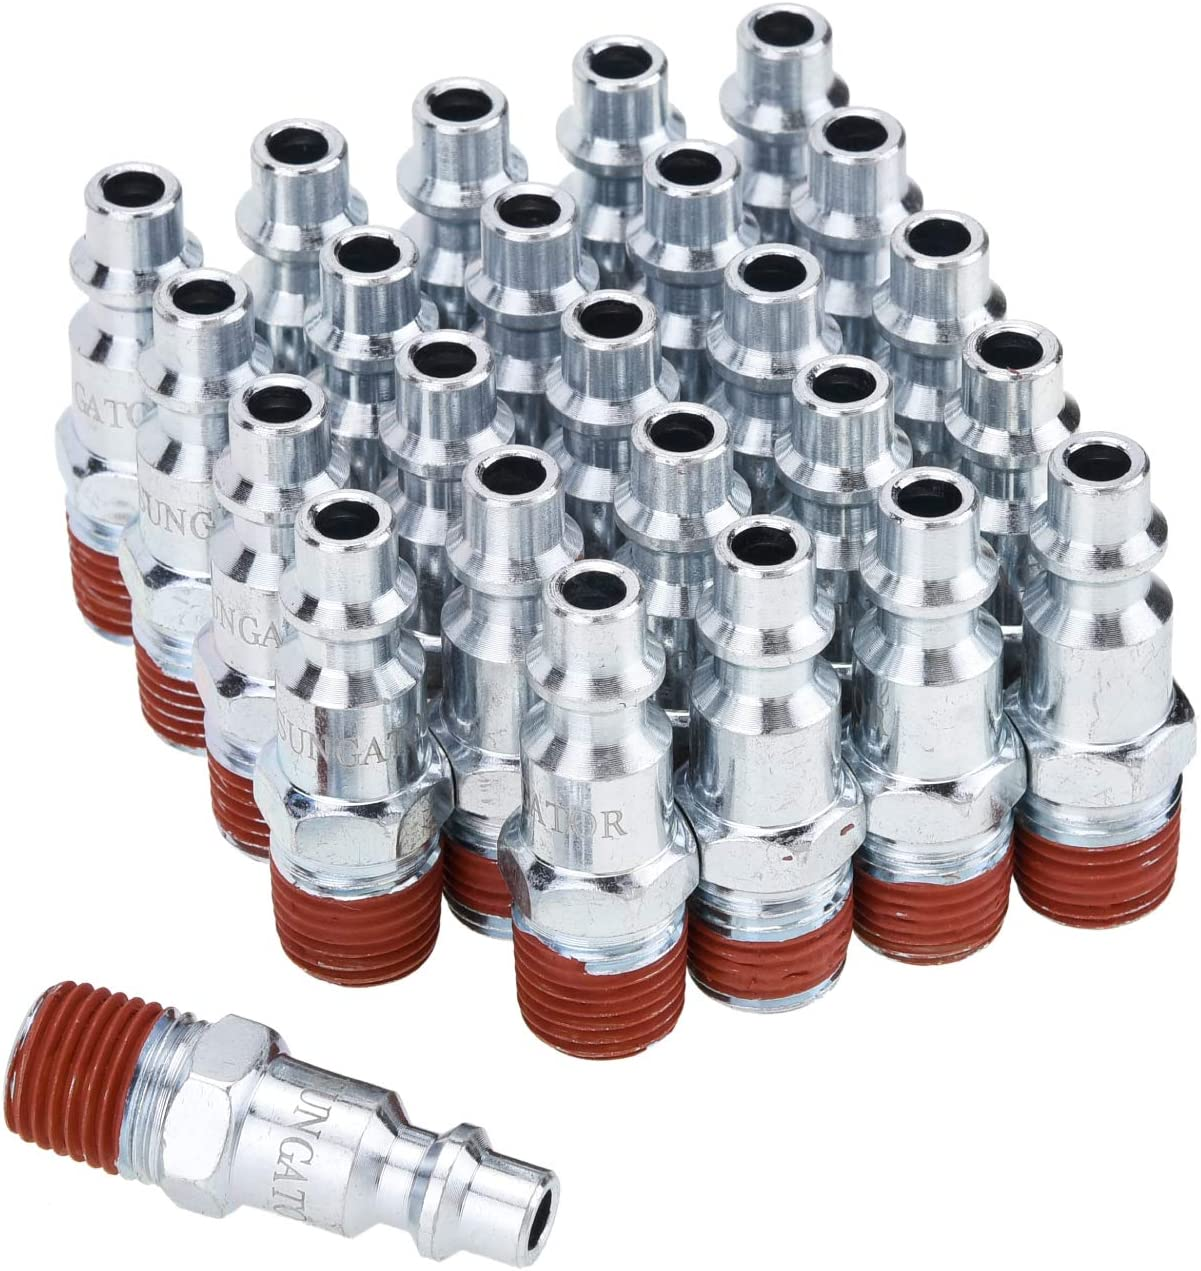 SUNGATOR 1/4-Inch NPT Male Industrial Air Plug, Pneumatic Plugs (25-Pack) - -